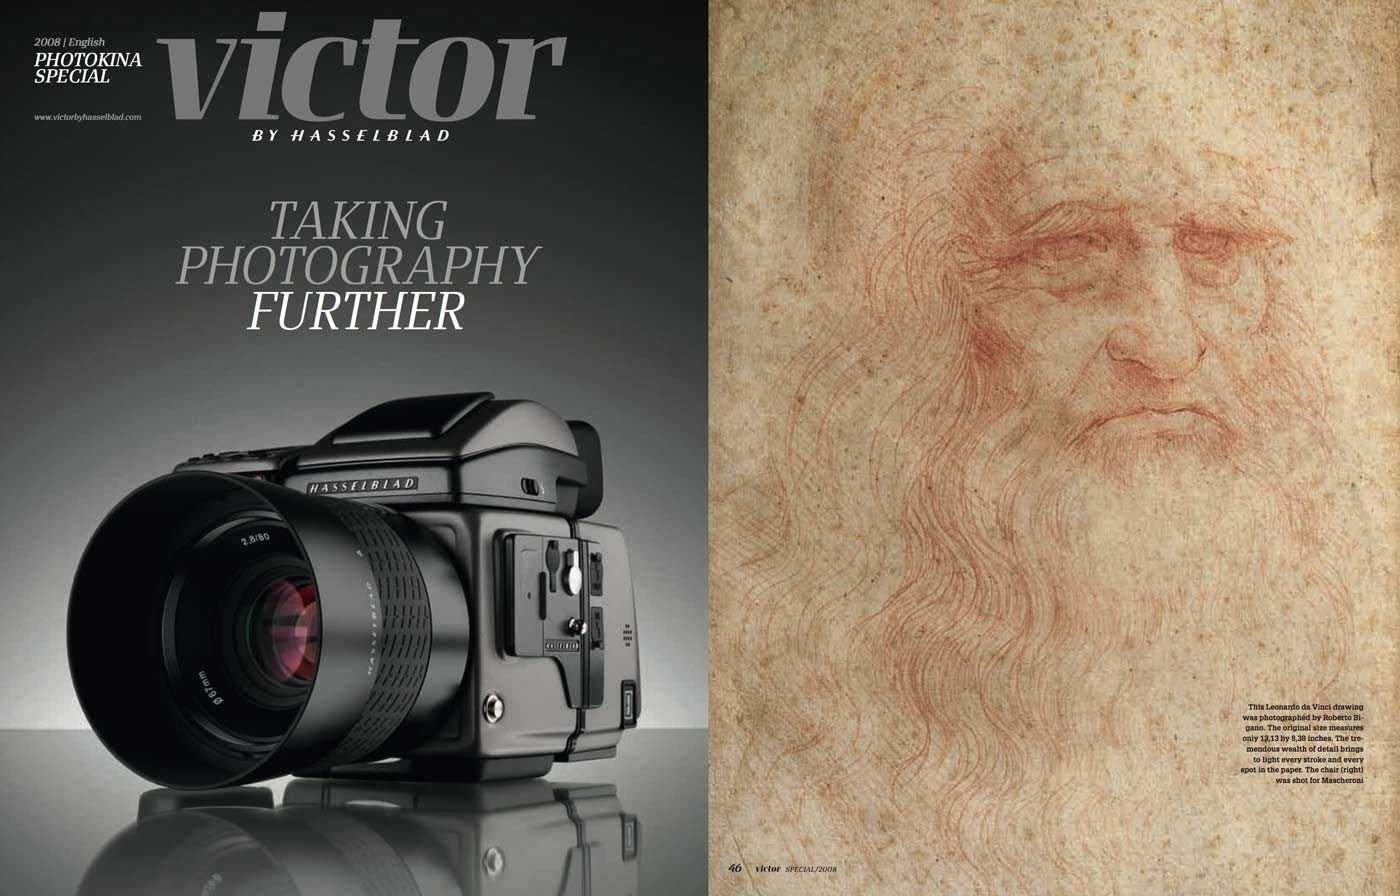 Leonardo's Self-Portrait for Victor by Hasselblad